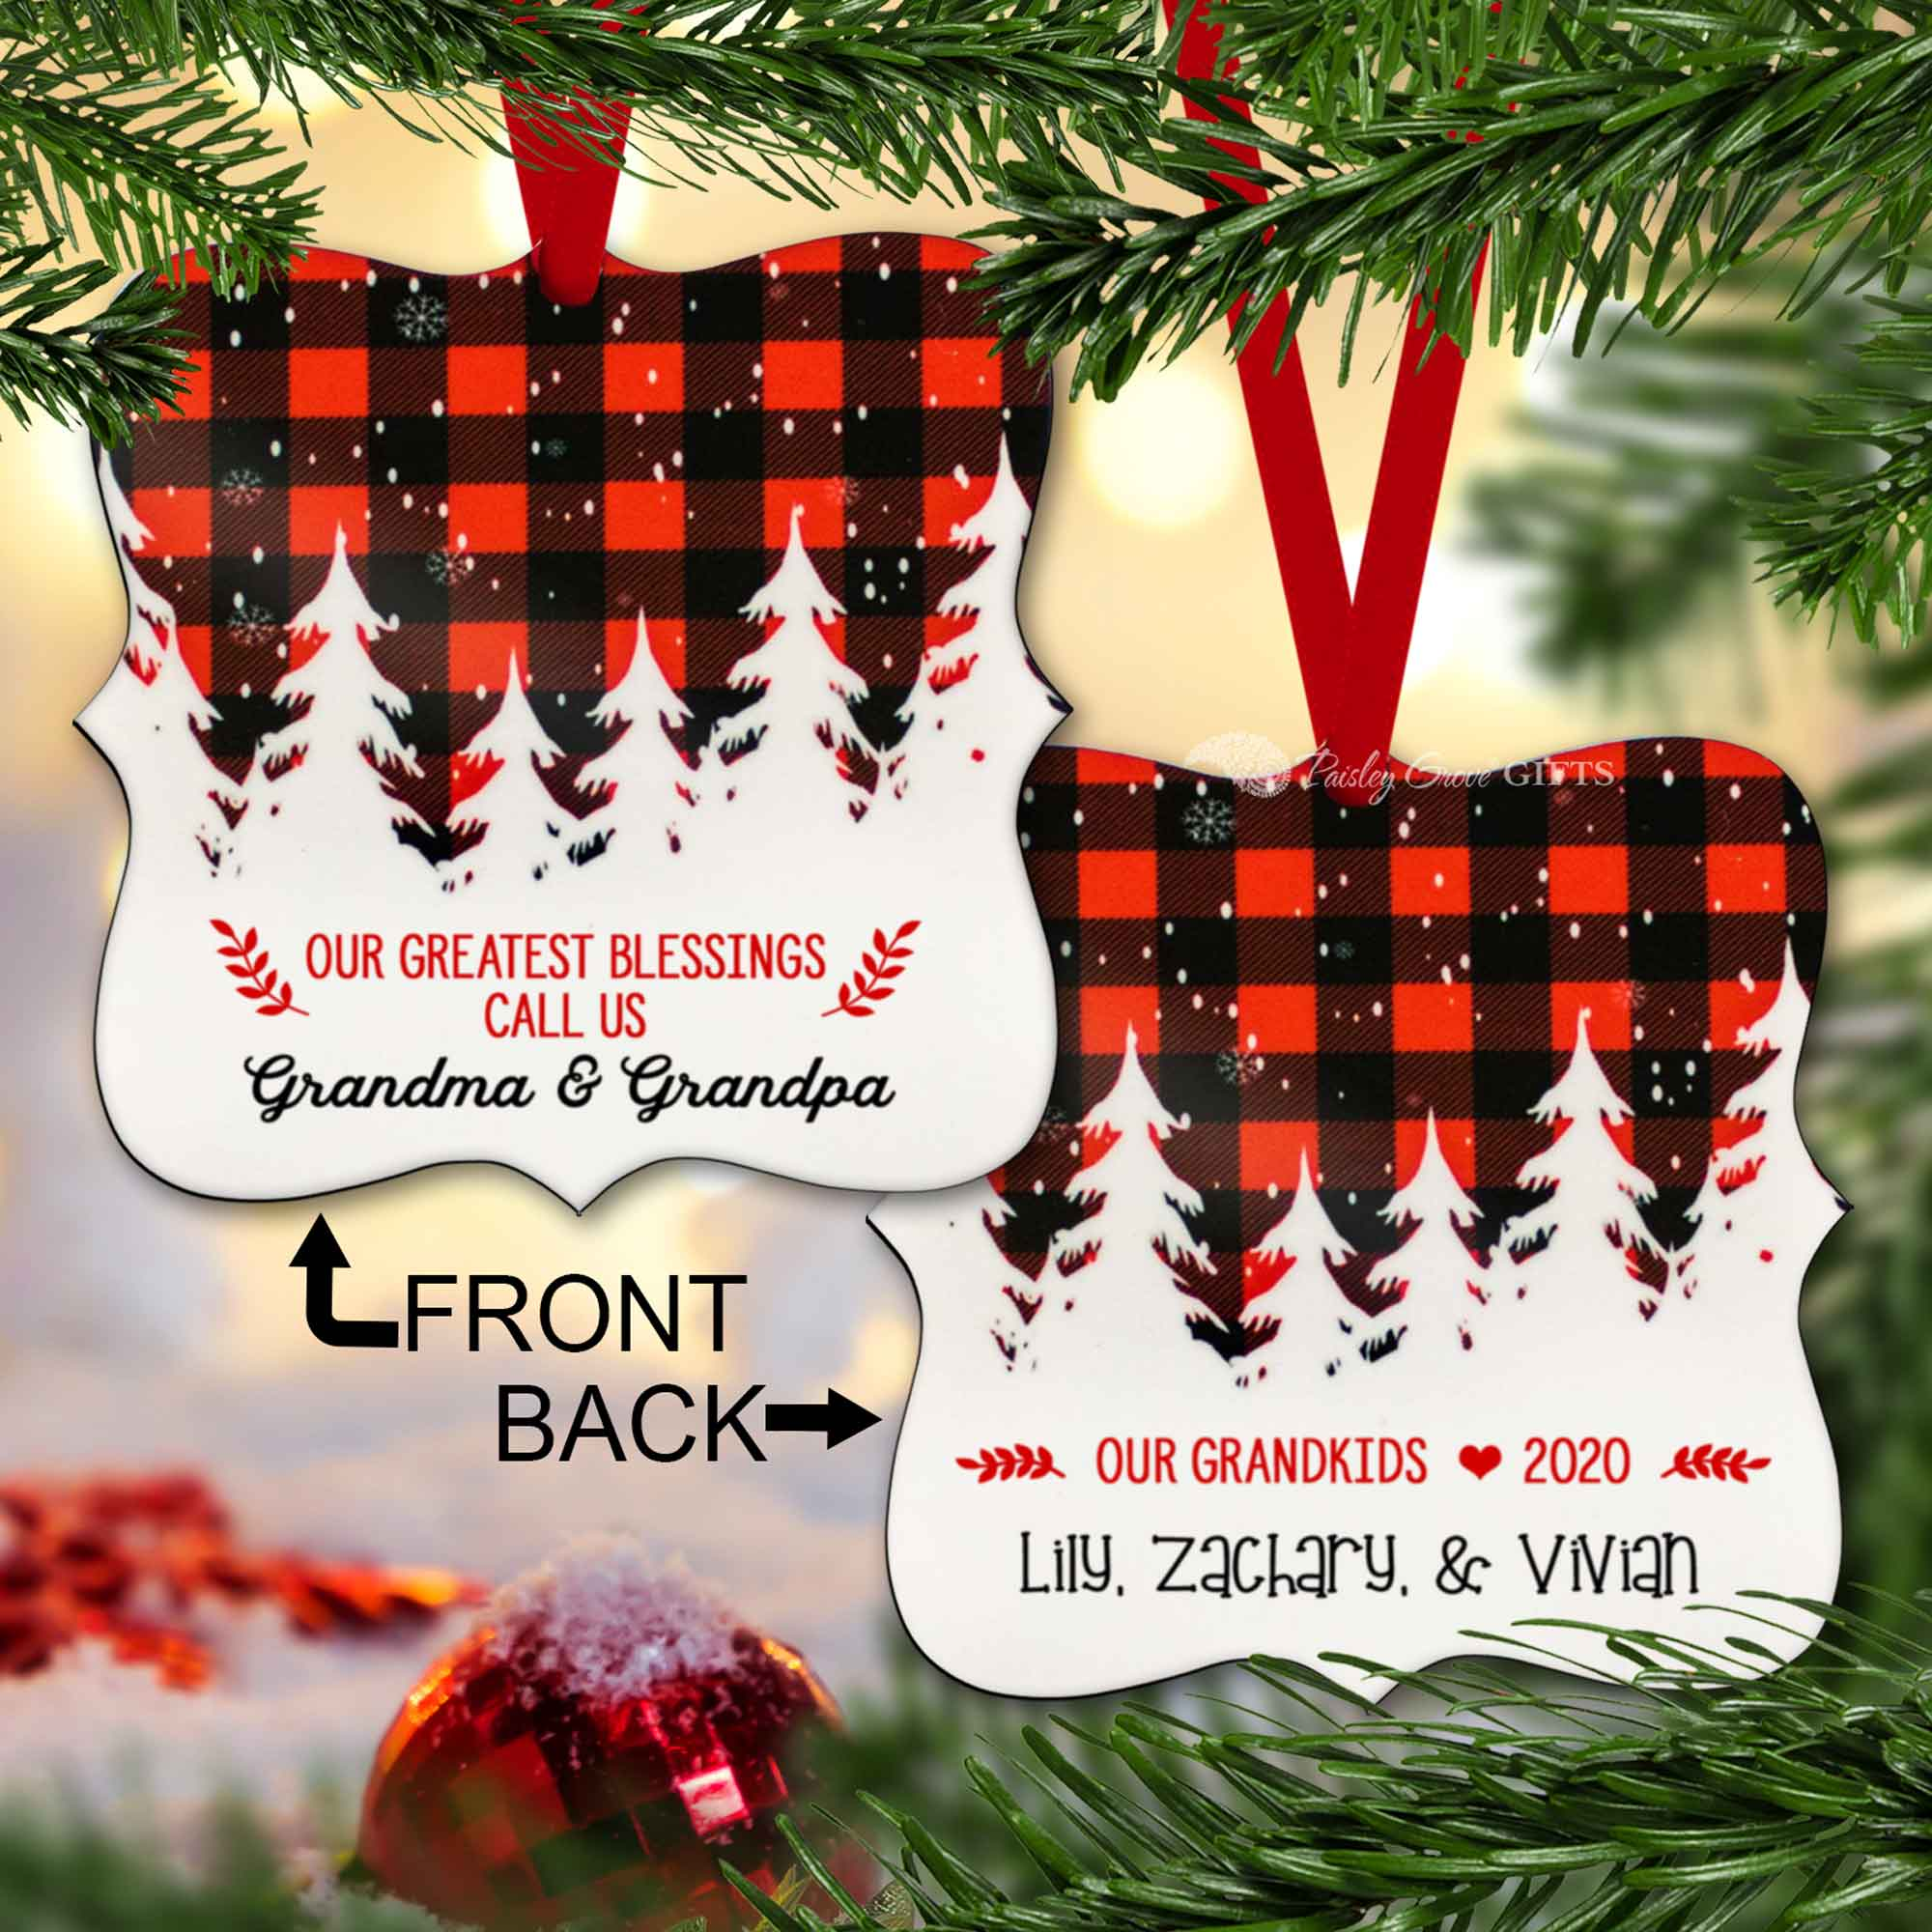 CopyrightPaisleyGroveGIFTS S502e5 Buffalo Plaid Custom Grandparents Ornament Christmas Gift from Grandchildren